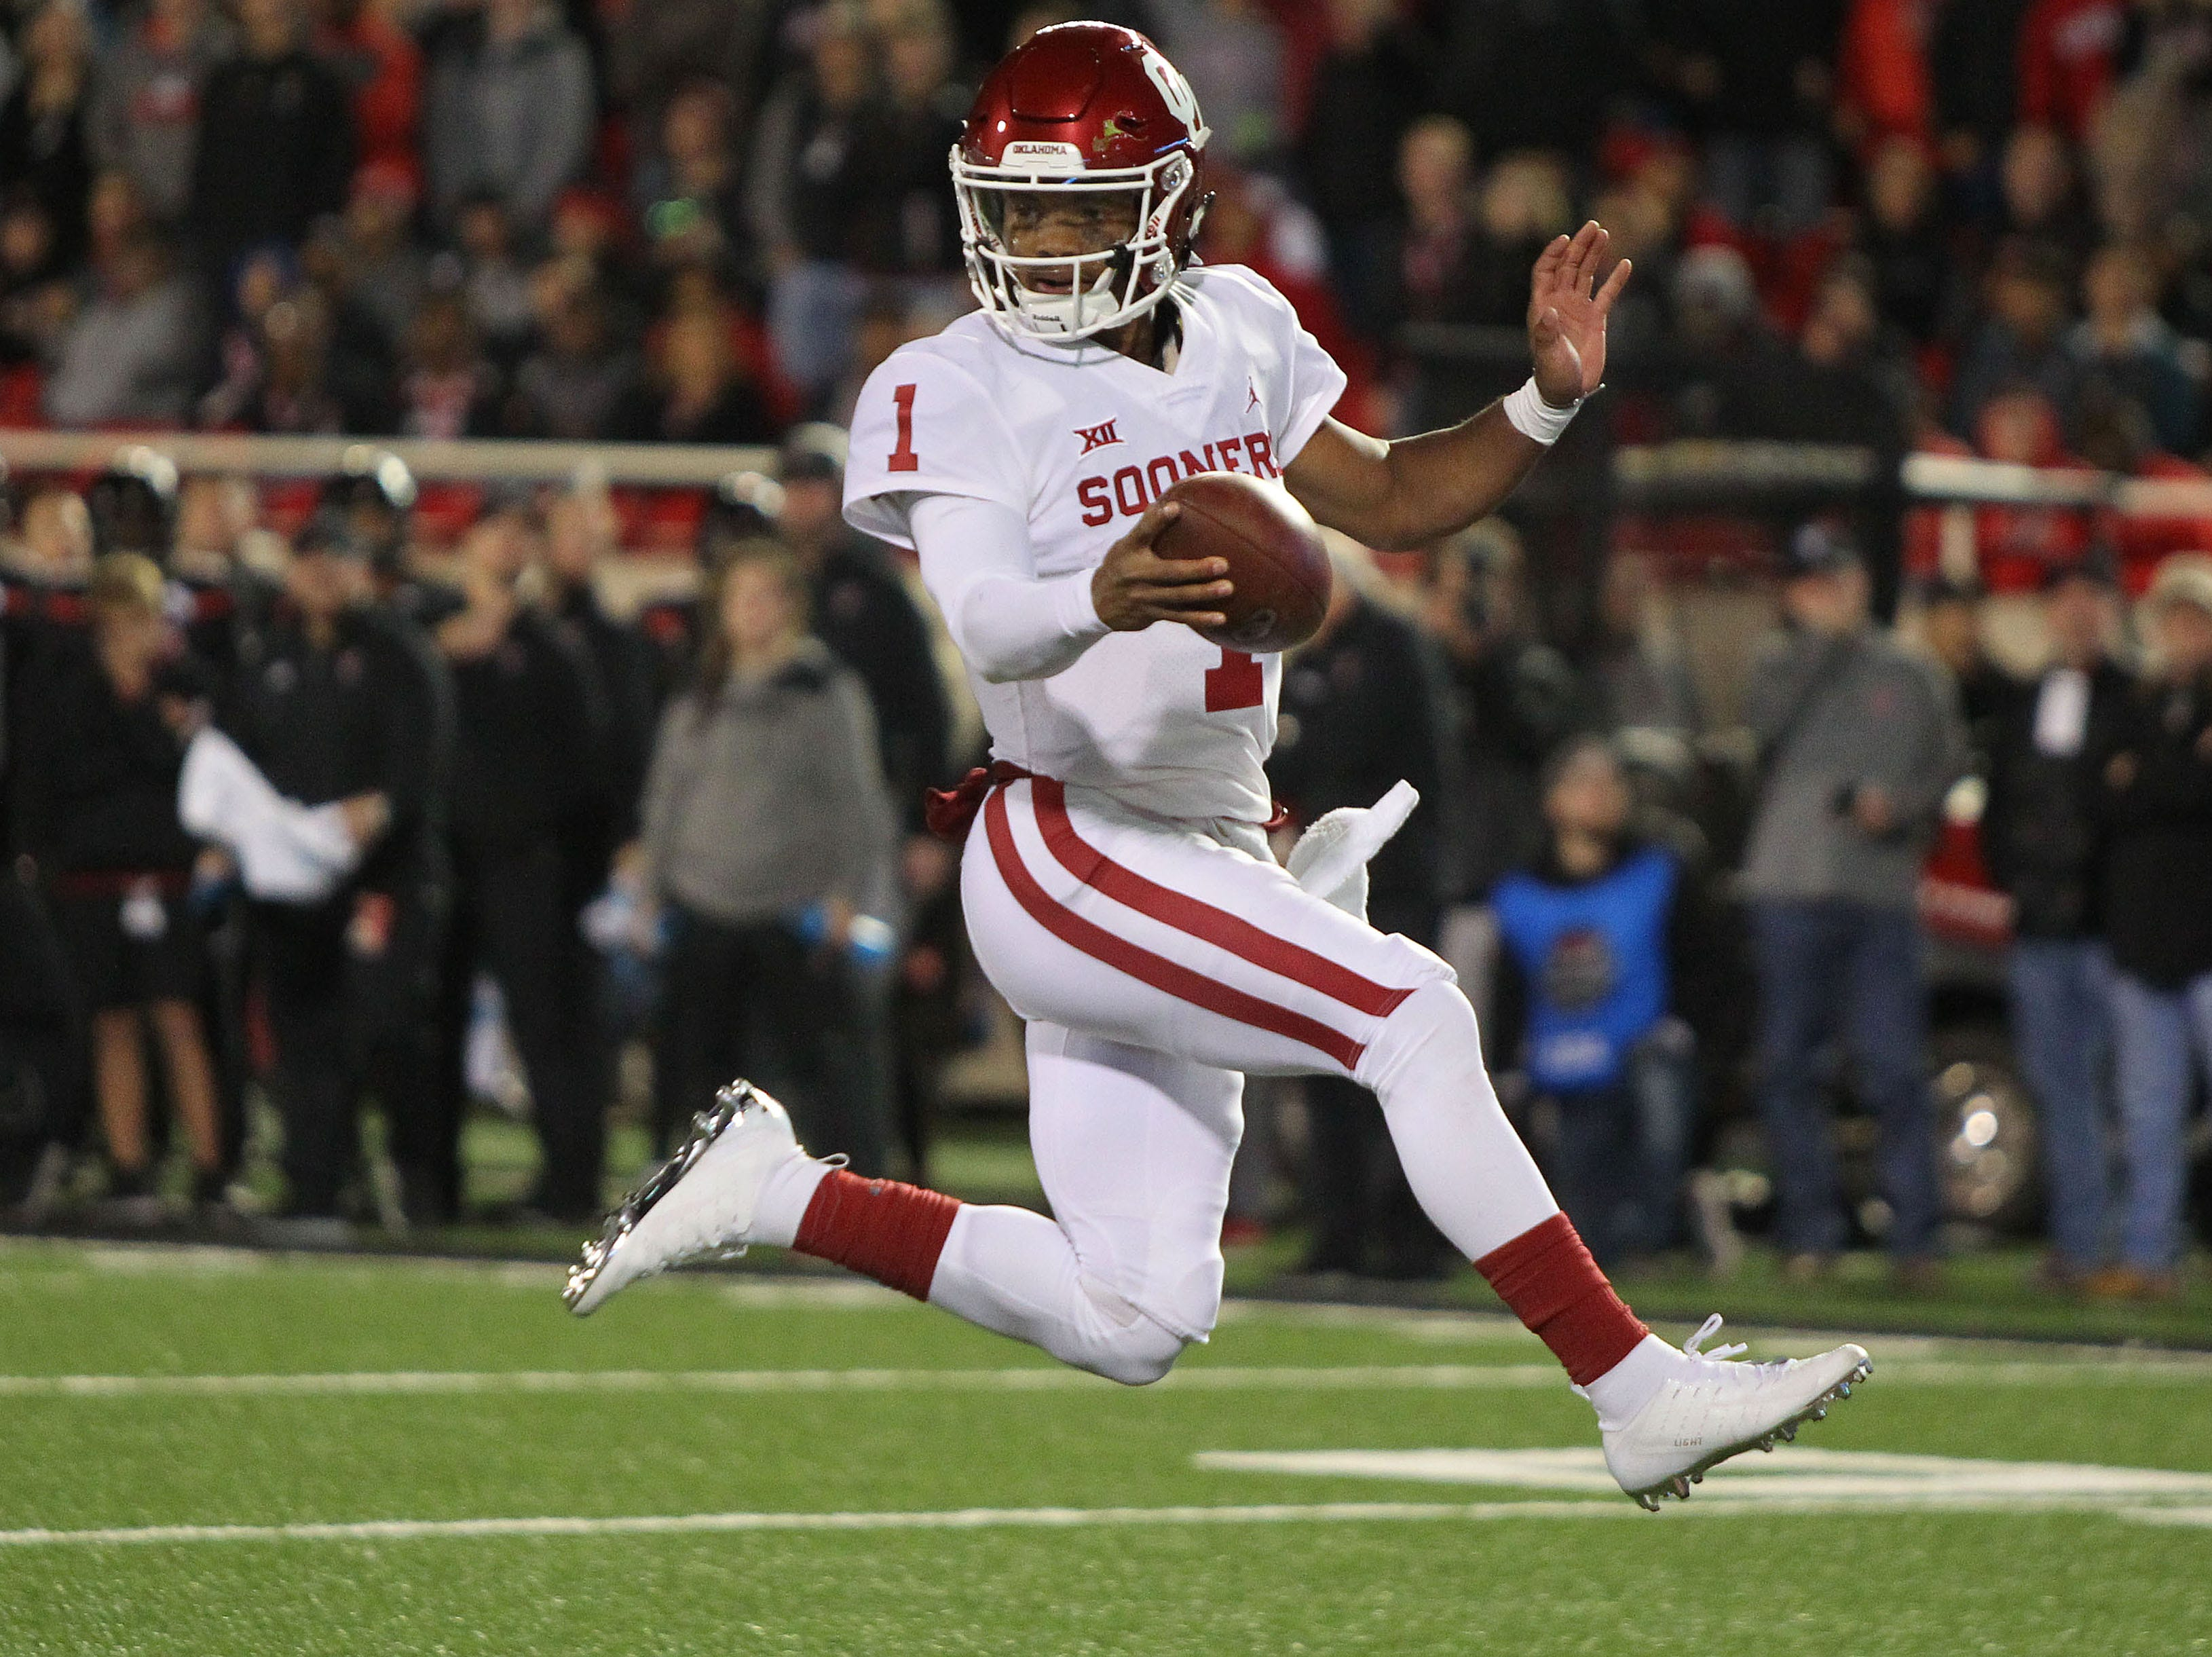 Oklahoma Sooners quarterback Kyler Murray (1) leaps into the end zone against the Texas Tech Red Raiders at Jones AT&T Stadium.